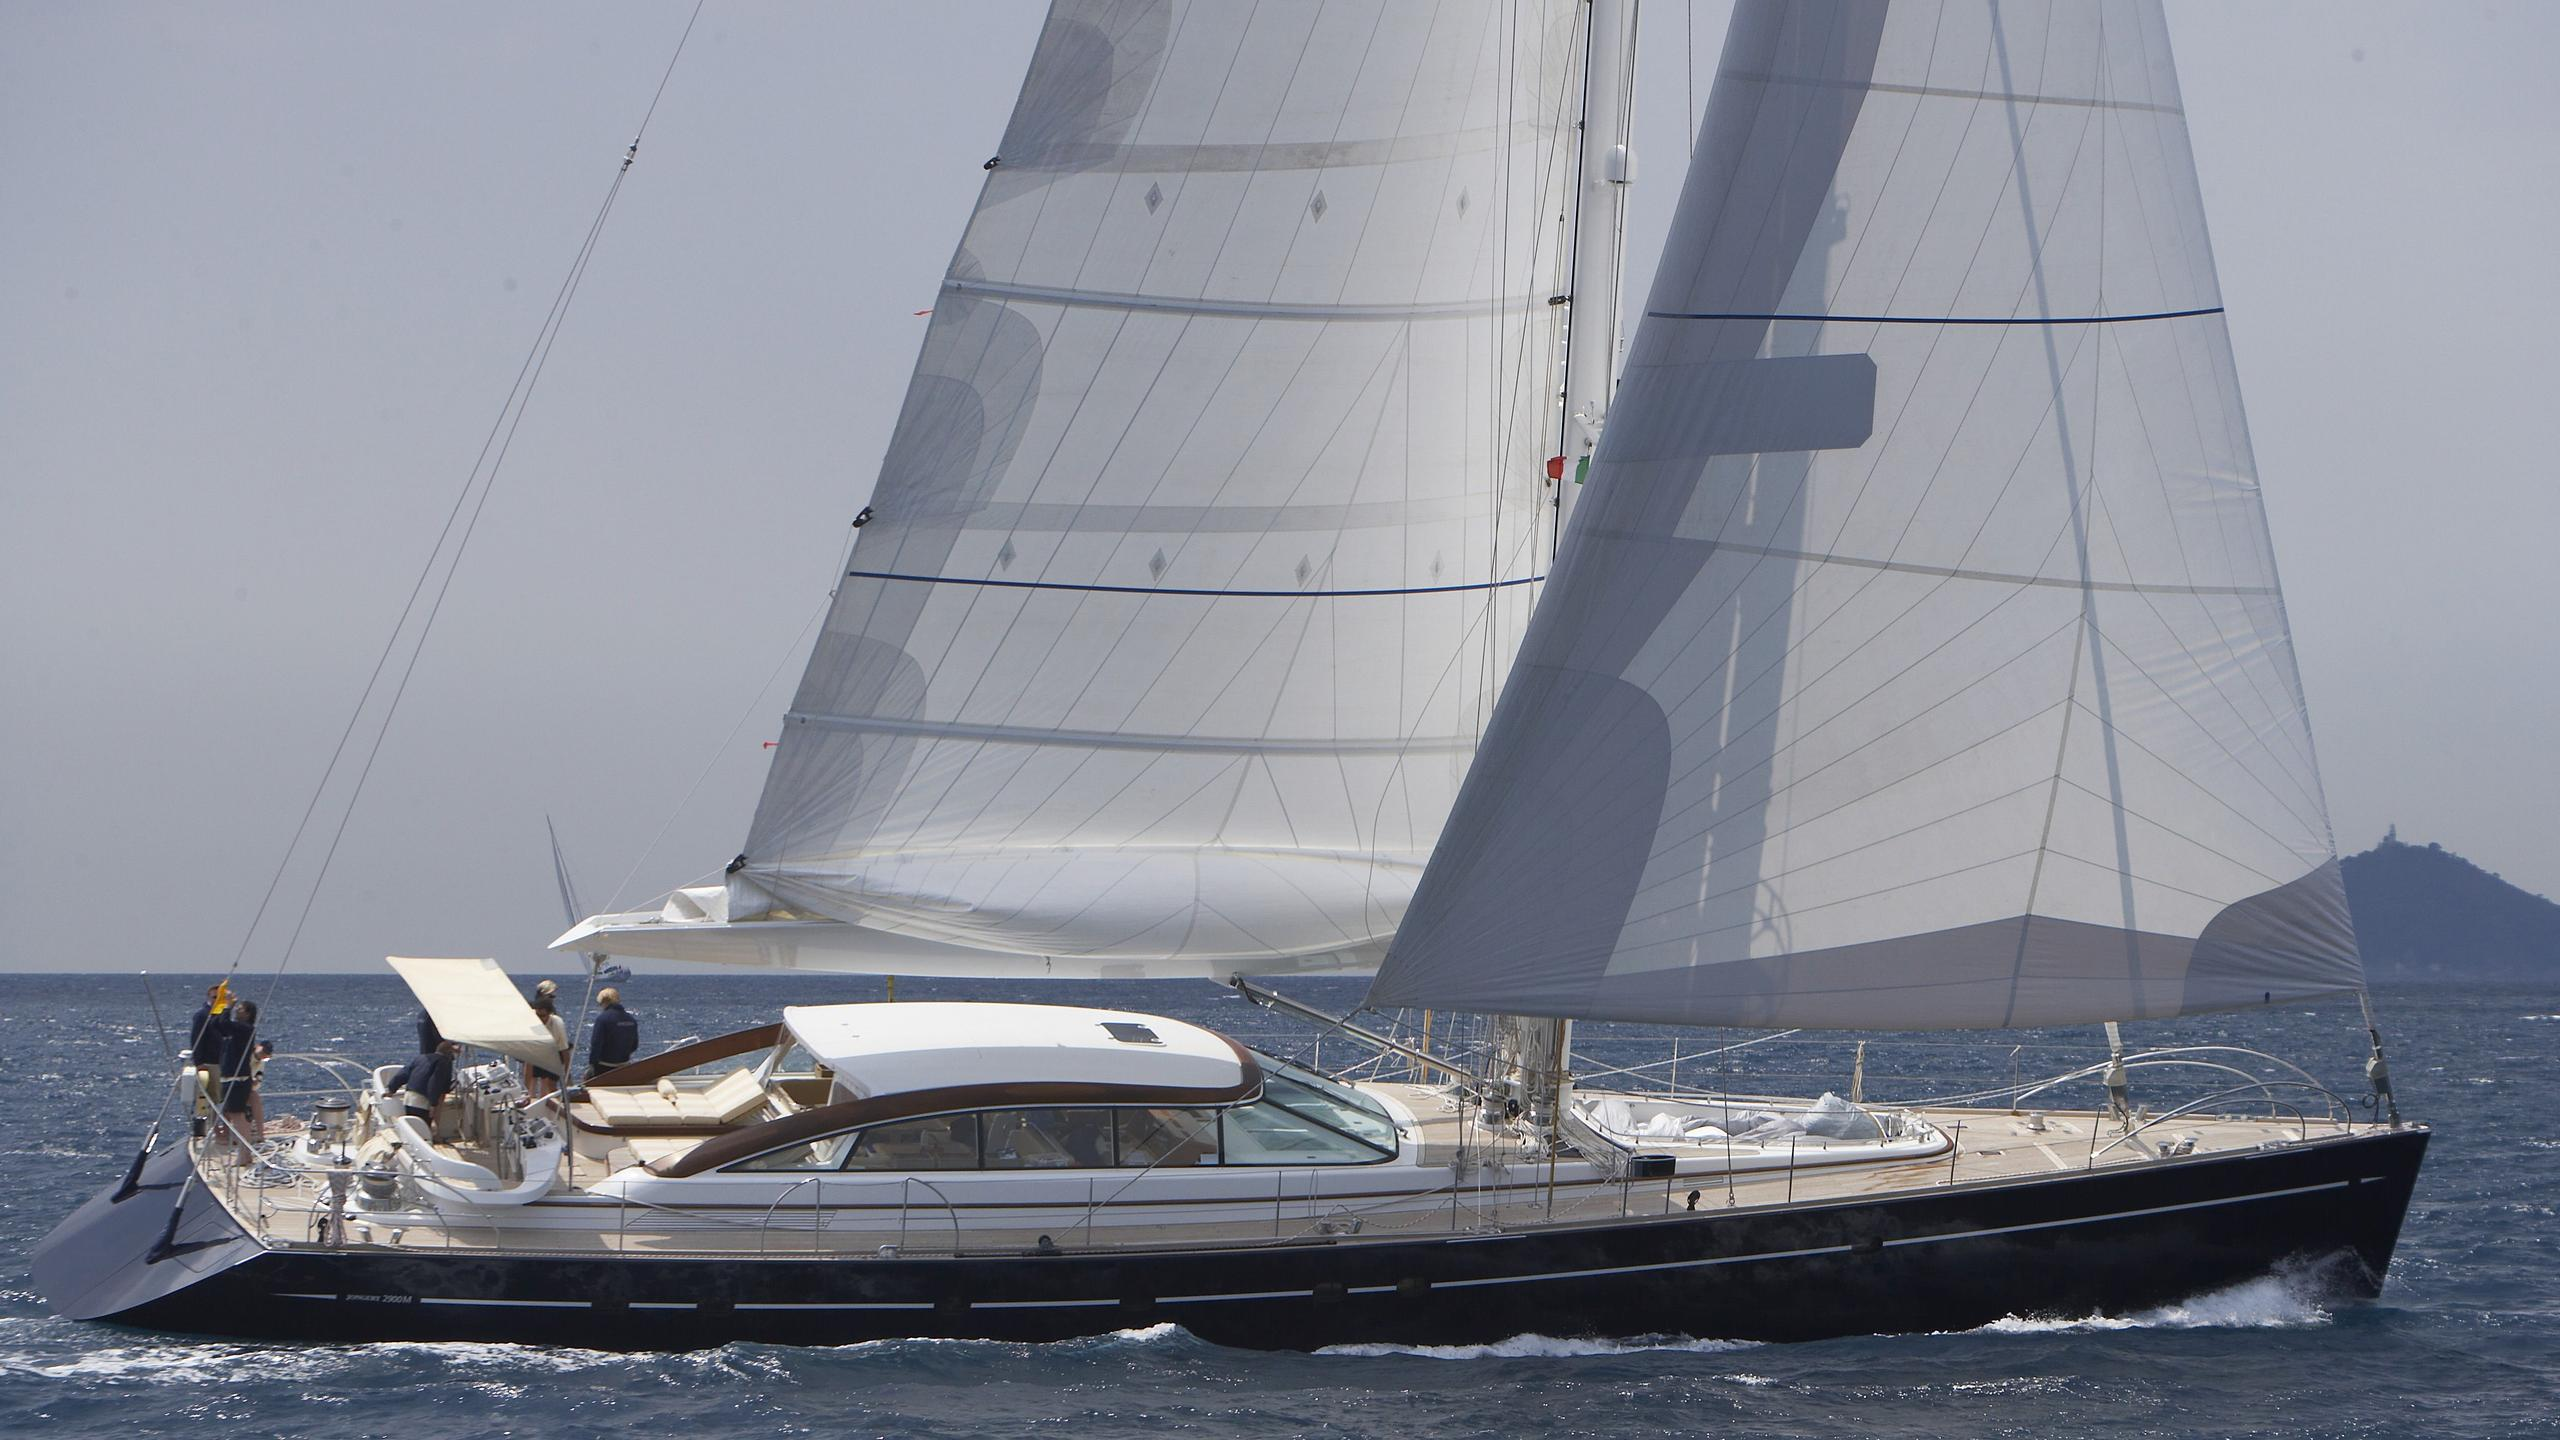 mbolo-yacht-for-sale-profile